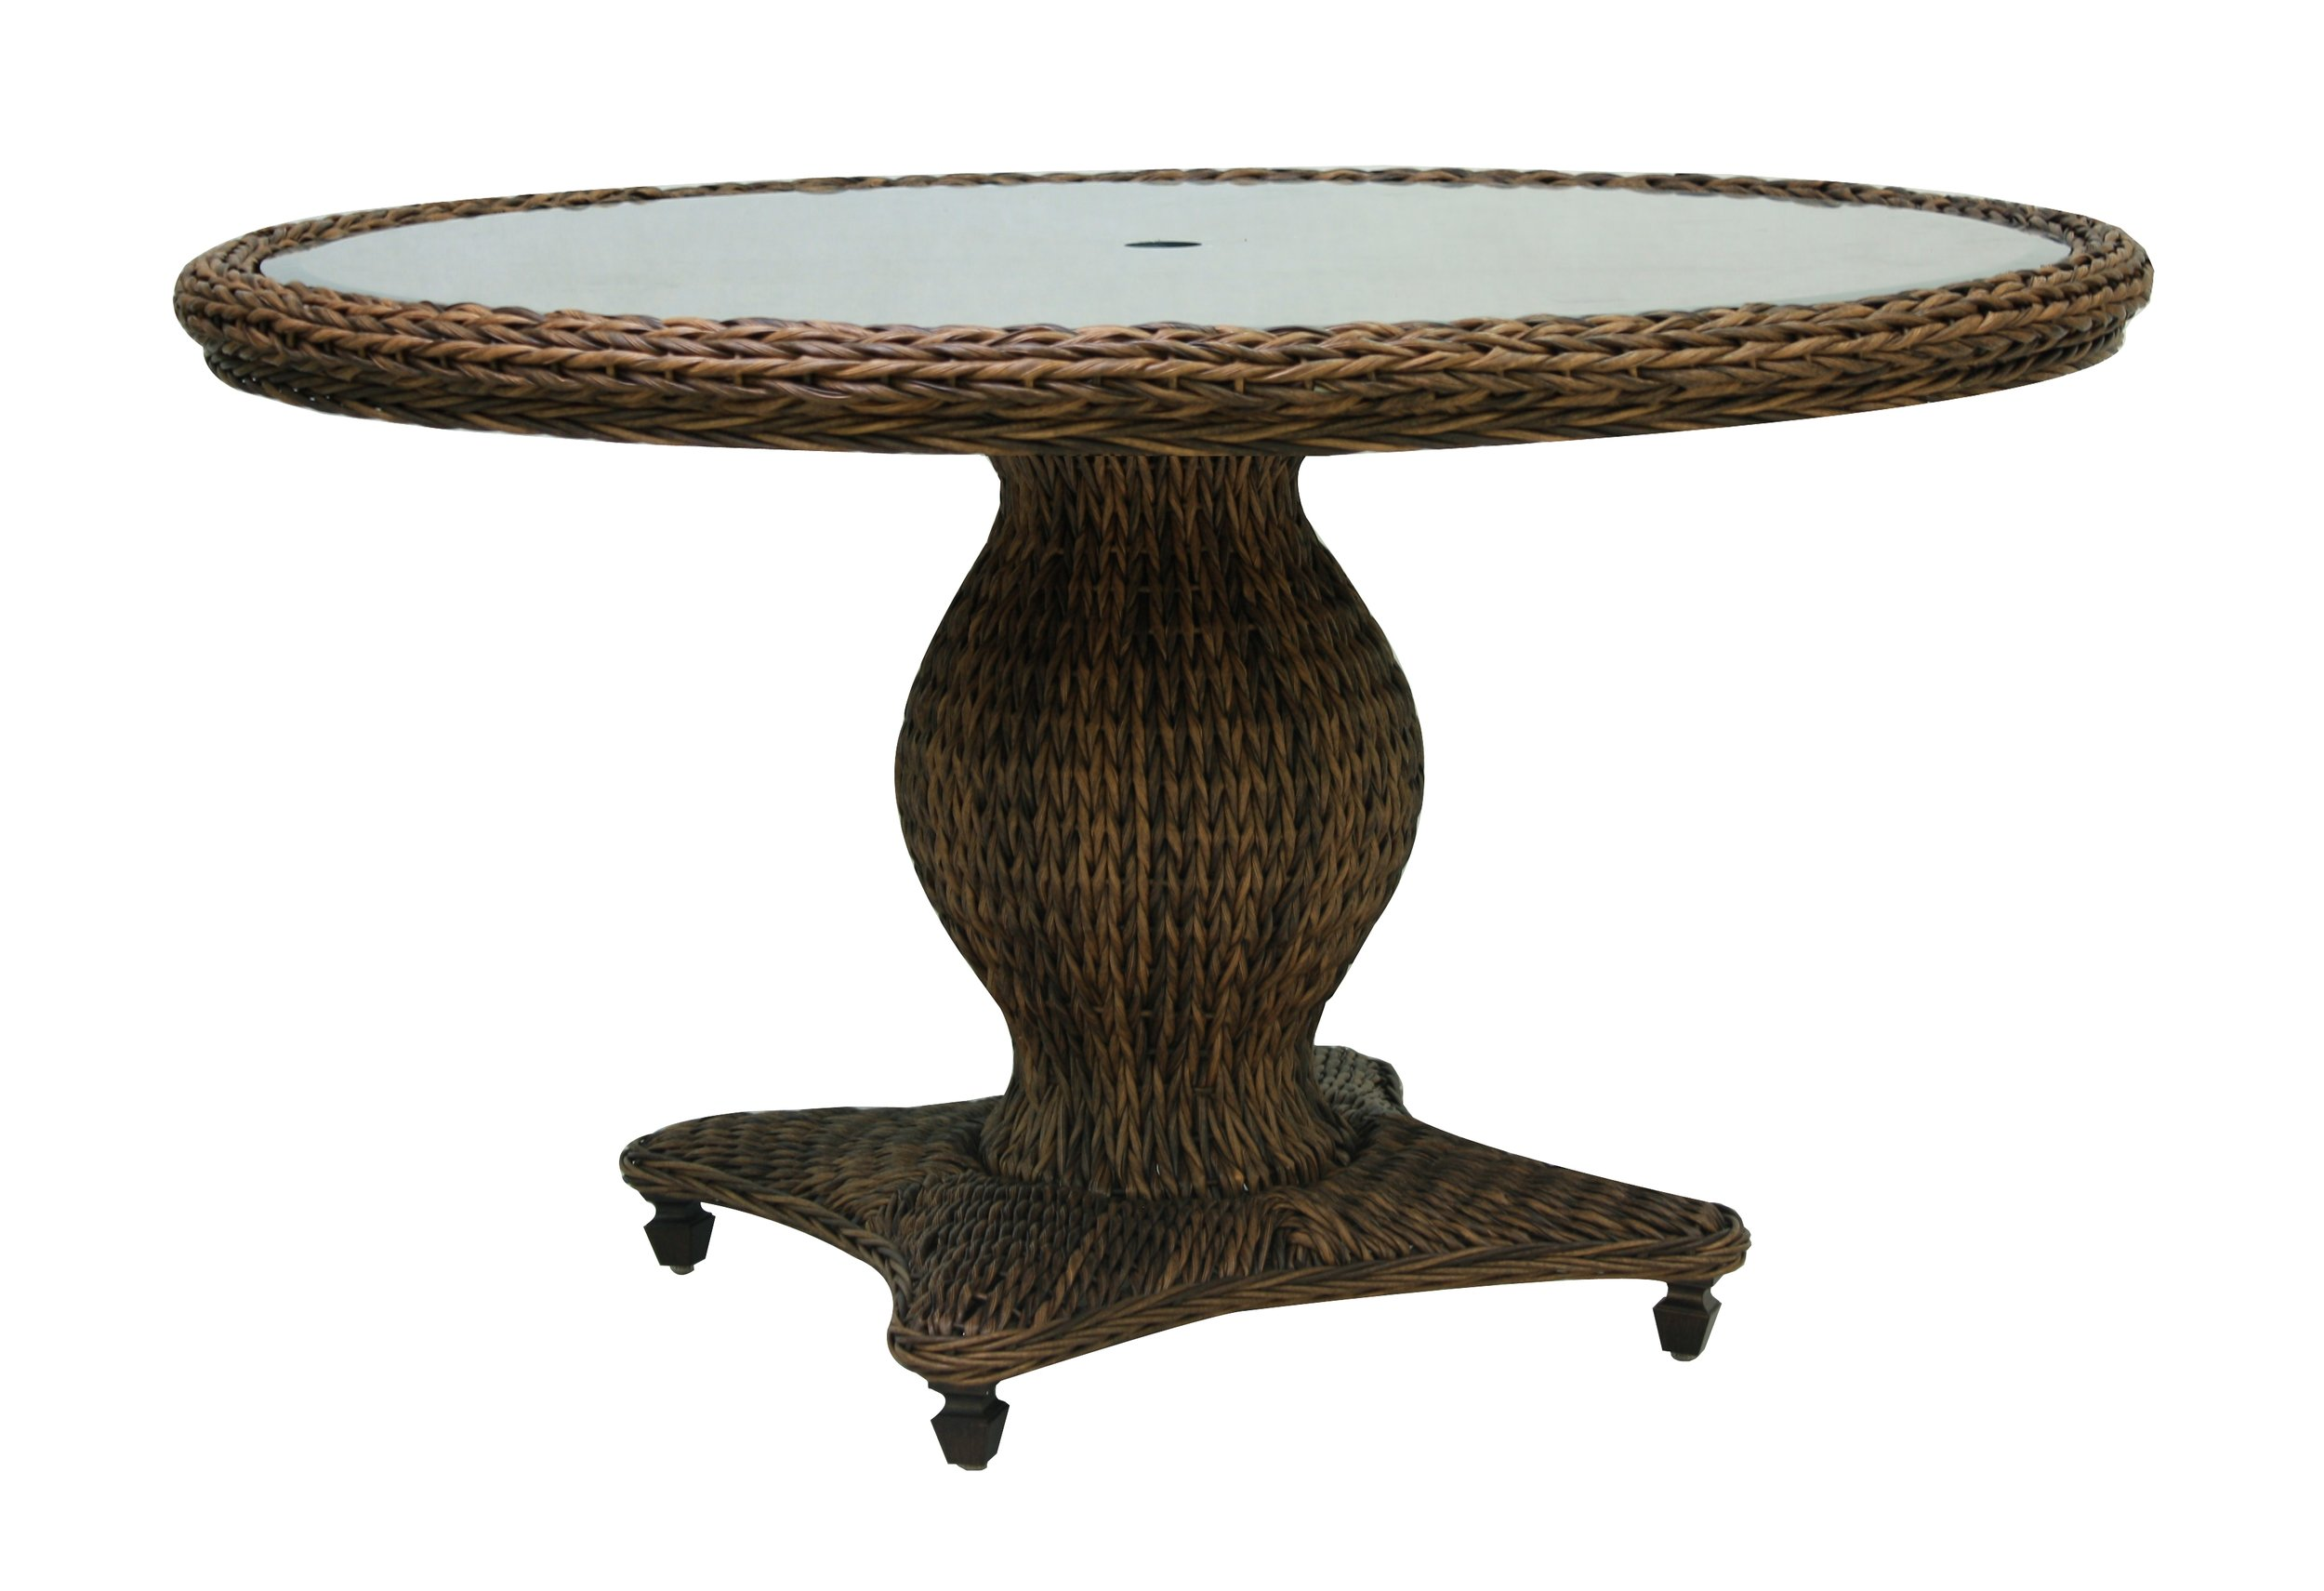 "973860 Antigua 61"" Round Dining Table  *see Book  (973860TW Antigua Woven Top & Glass) (973860B Antigua 61"" Round Dining Table Base)  61"" x 61"" x 30.2"""